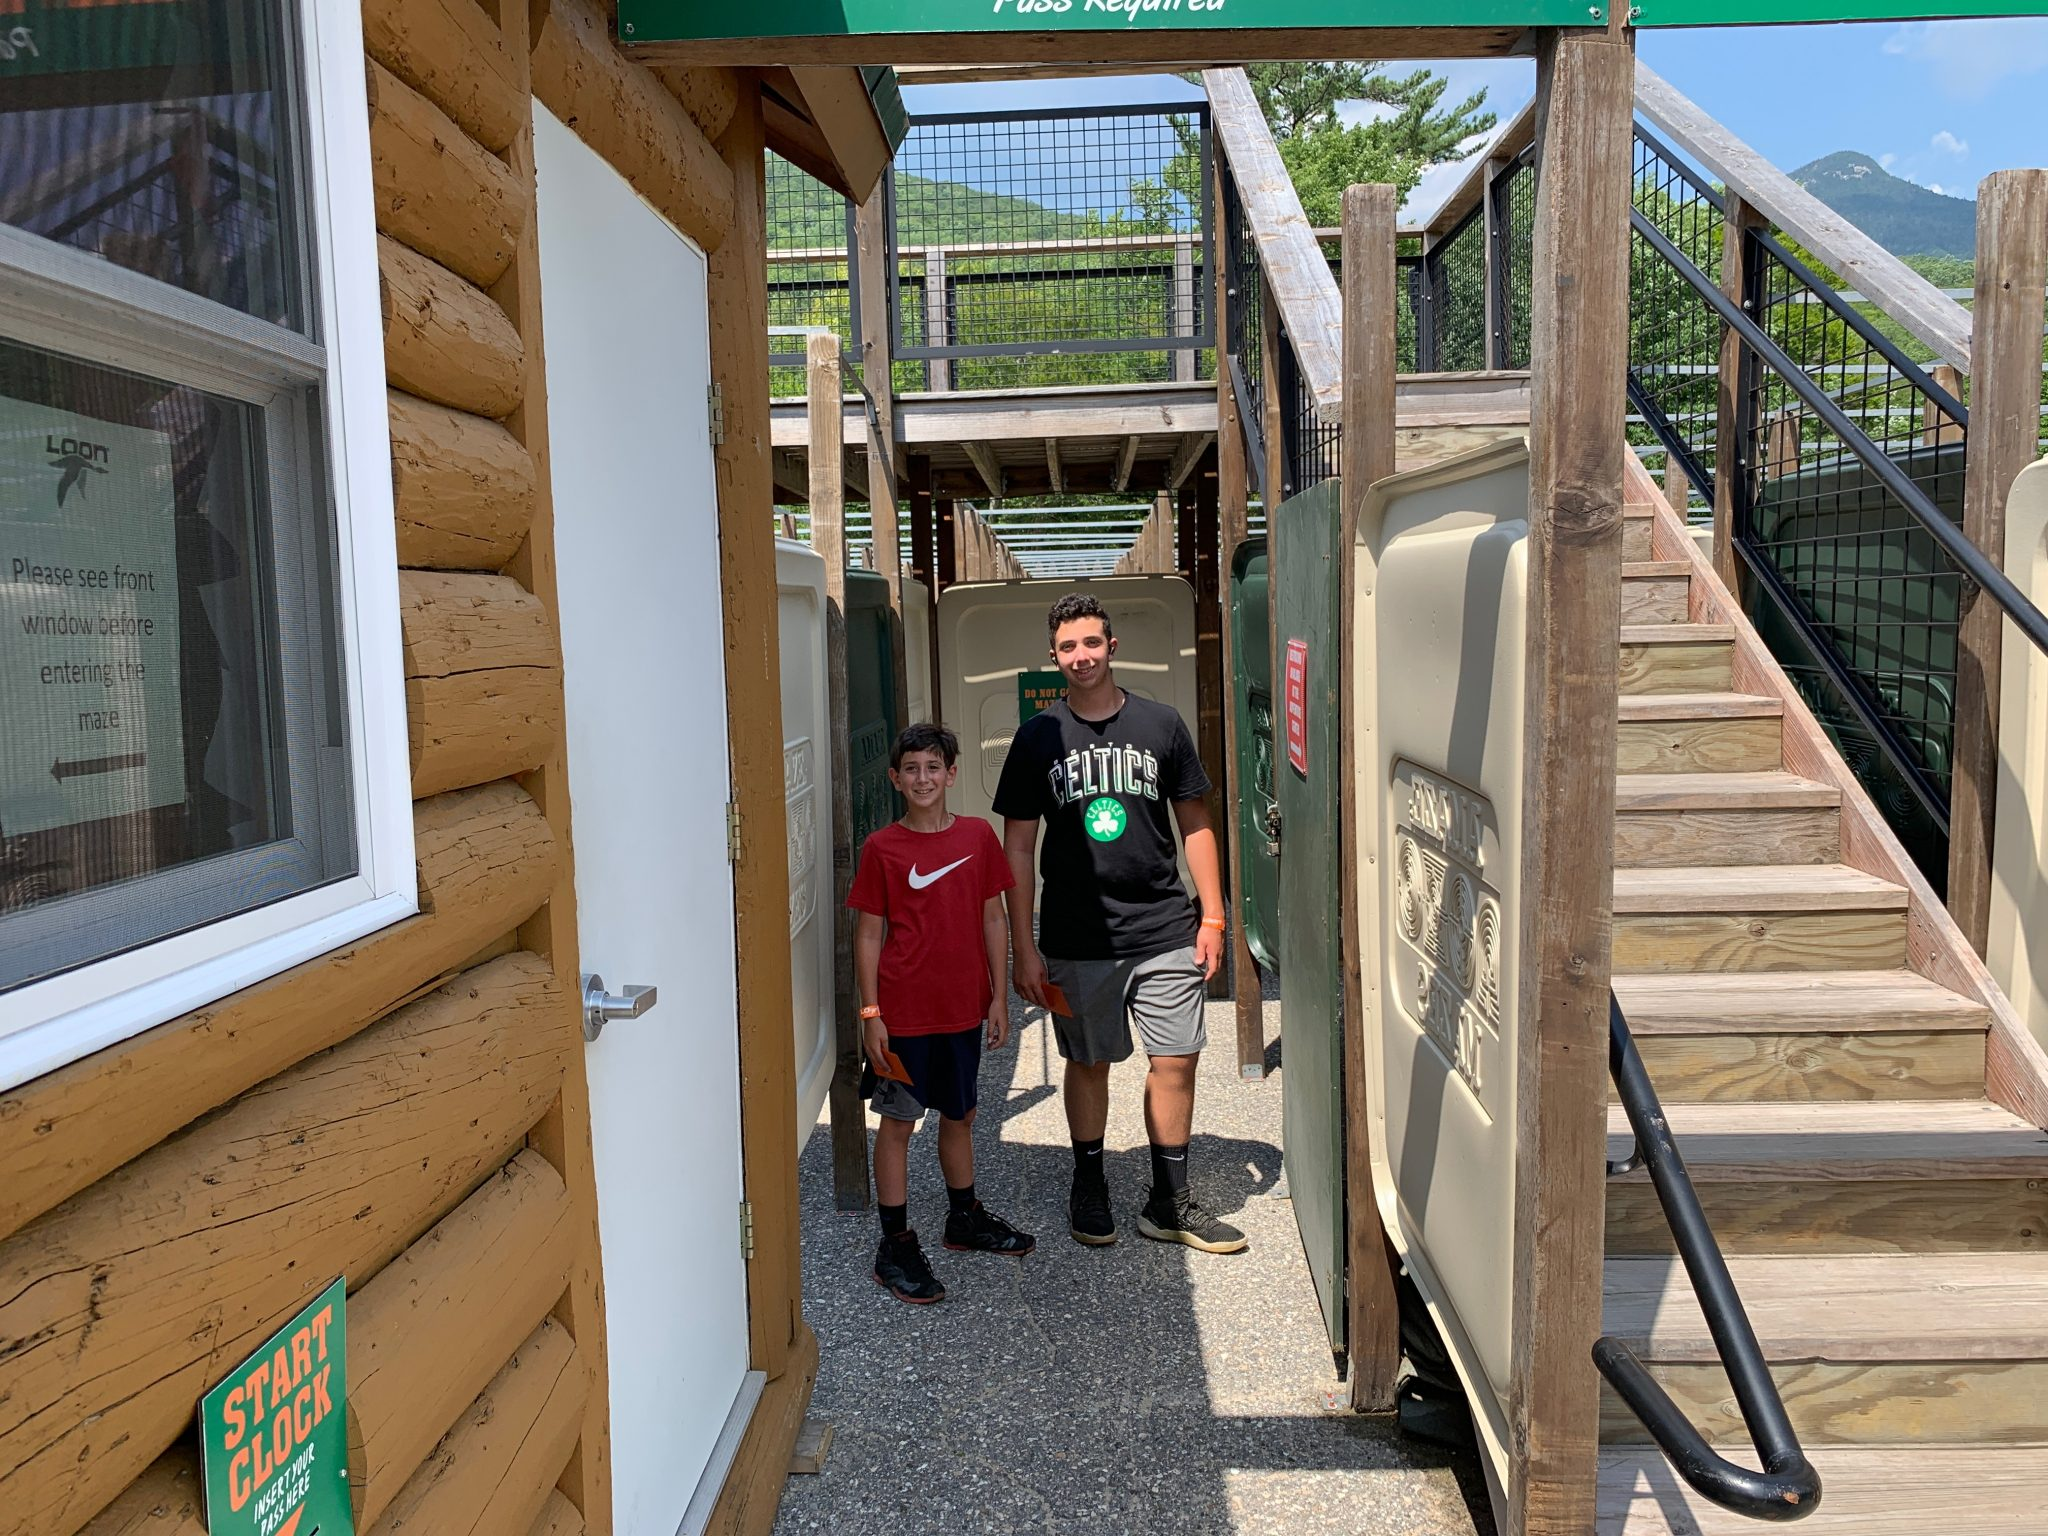 Head to Loon Mountain for your next summer adventure. Zipline over the Pemi River, ride the scenic gondola skyride and much more at the adventure center.